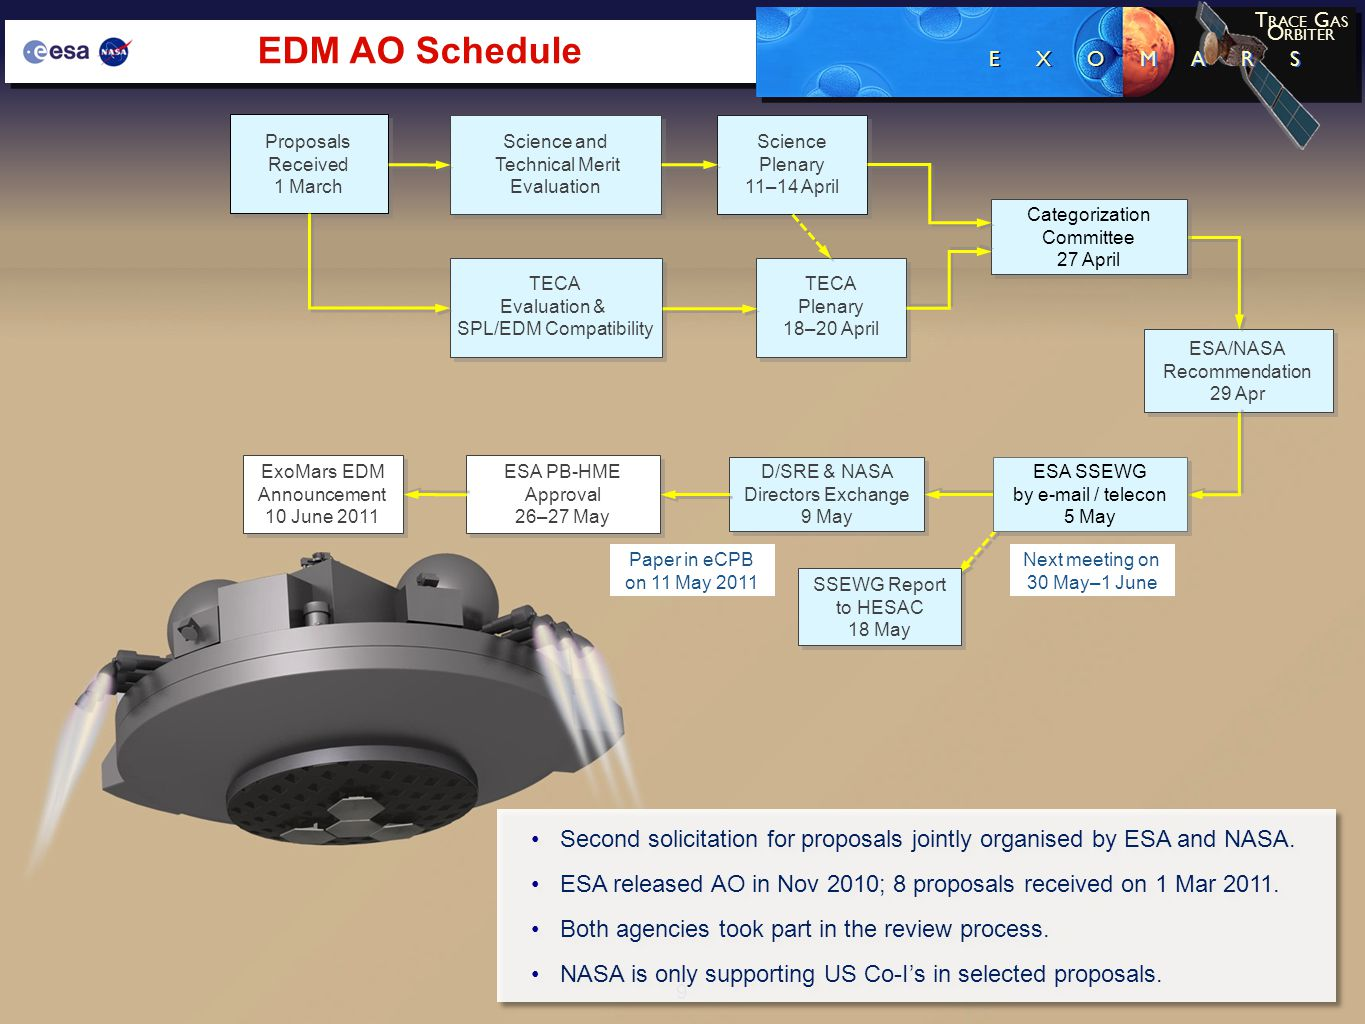 9 EDM AO Schedule TECA Evaluation & SPL/EDM Compatibility TECA Evaluation & SPL/EDM Compatibility Science and Technical Merit Evaluation Science and Technical Merit Evaluation TECA Plenary 18–20 April TECA Plenary 18–20 April Science Plenary 11–14 April Science Plenary 11–14 April ESA/NASA Recommendation 29 Apr ESA/NASA Recommendation 29 Apr Proposals Received 1 March Proposals Received 1 March D/SRE & NASA Directors Exchange 9 May D/SRE & NASA Directors Exchange 9 May ESA PB-HME Approval 26–27 May ESA PB-HME Approval 26–27 May ExoMars EDM Announcement 10 June 2011 ExoMars EDM Announcement 10 June 2011 Categorization Committee 27 April Categorization Committee 27 April Next meeting on 30 May–1 June Paper in eCPB on 11 May 2011 ESA SSEWG by e-mail / telecon 5 May ESA SSEWG by e-mail / telecon 5 May SSEWG Report to HESAC 18 May SSEWG Report to HESAC 18 May E X O M A R S T RACE G AS O RBITER Second solicitation for proposals jointly organised by ESA and NASA.